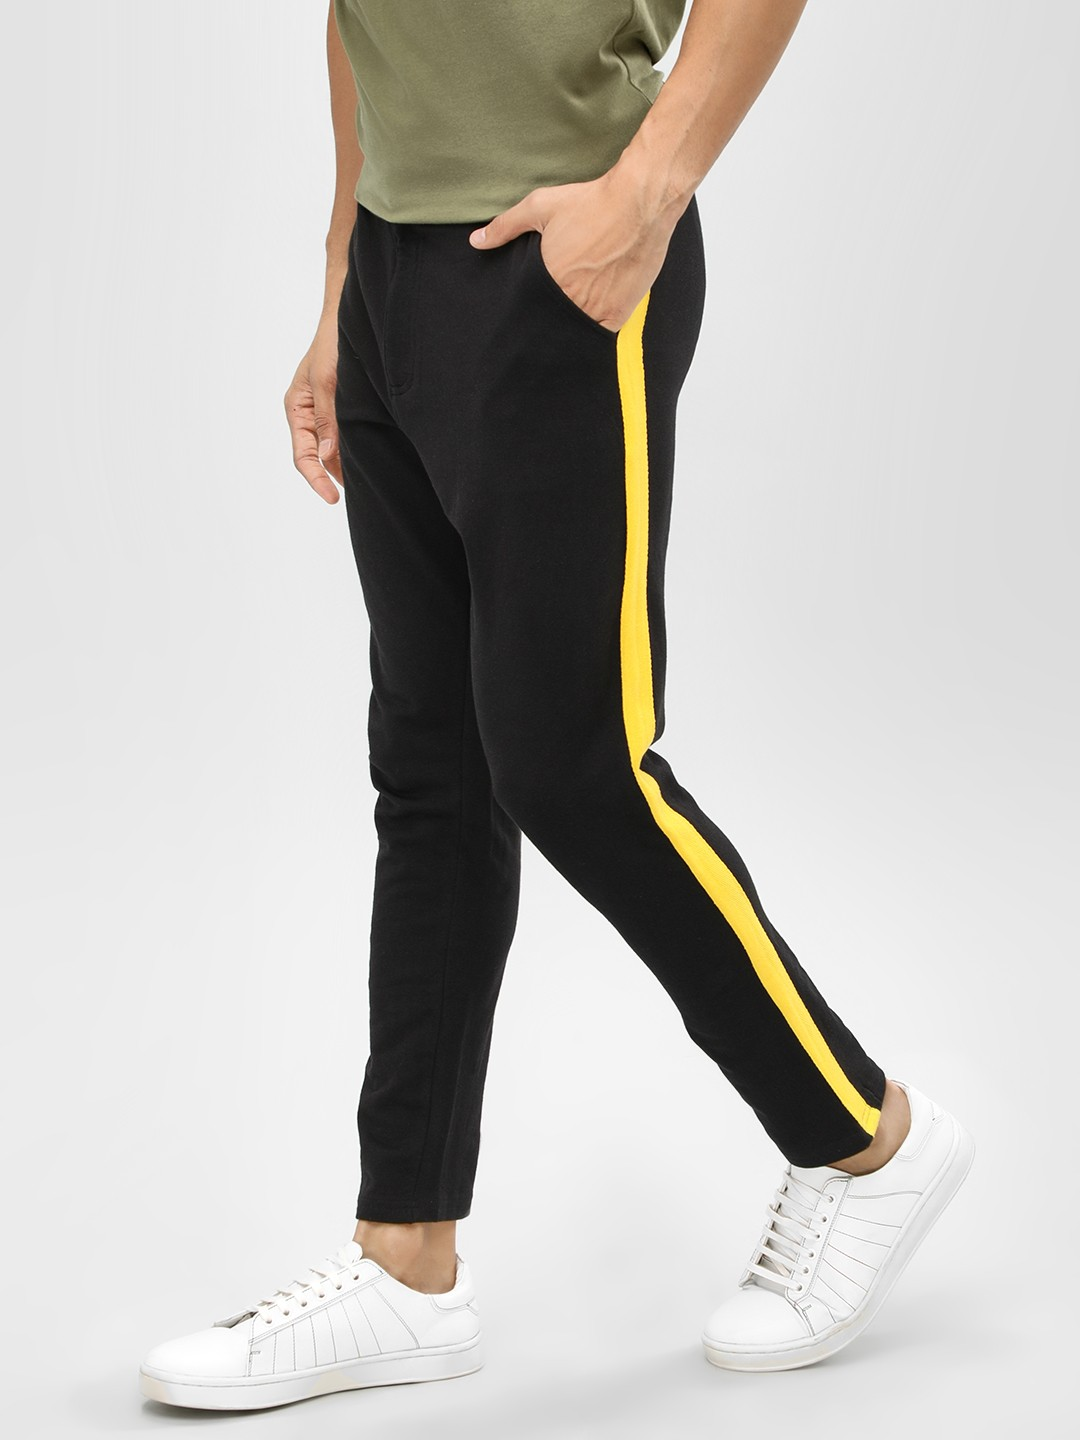 Garcon Black Contrast Side Tape Knitted Trousers 1